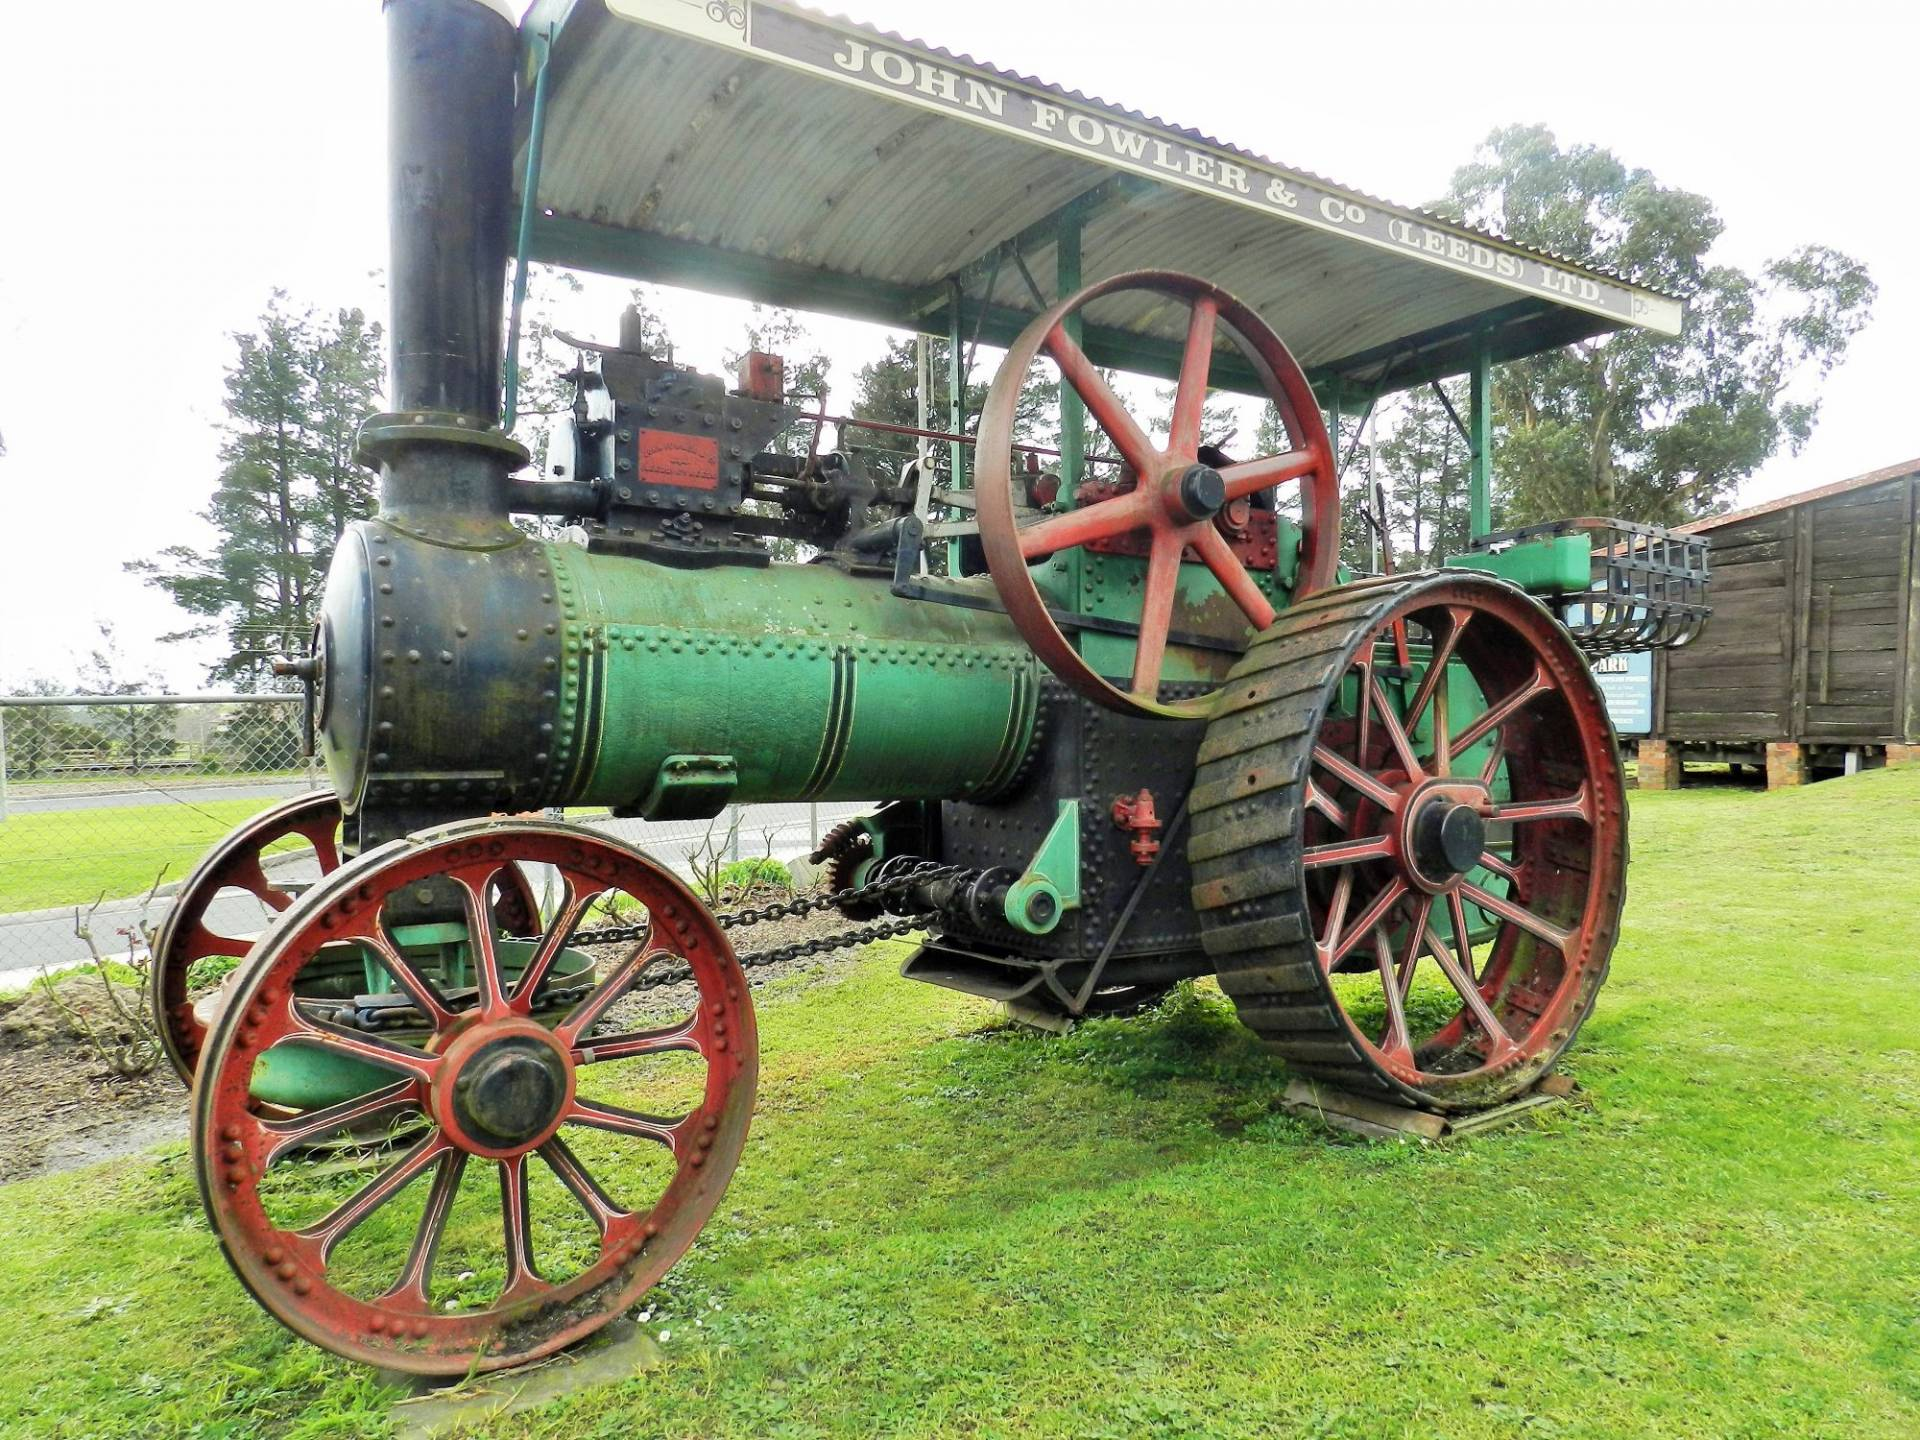 This Week's donation was provided by Gavan Little: Steam Traction Engine